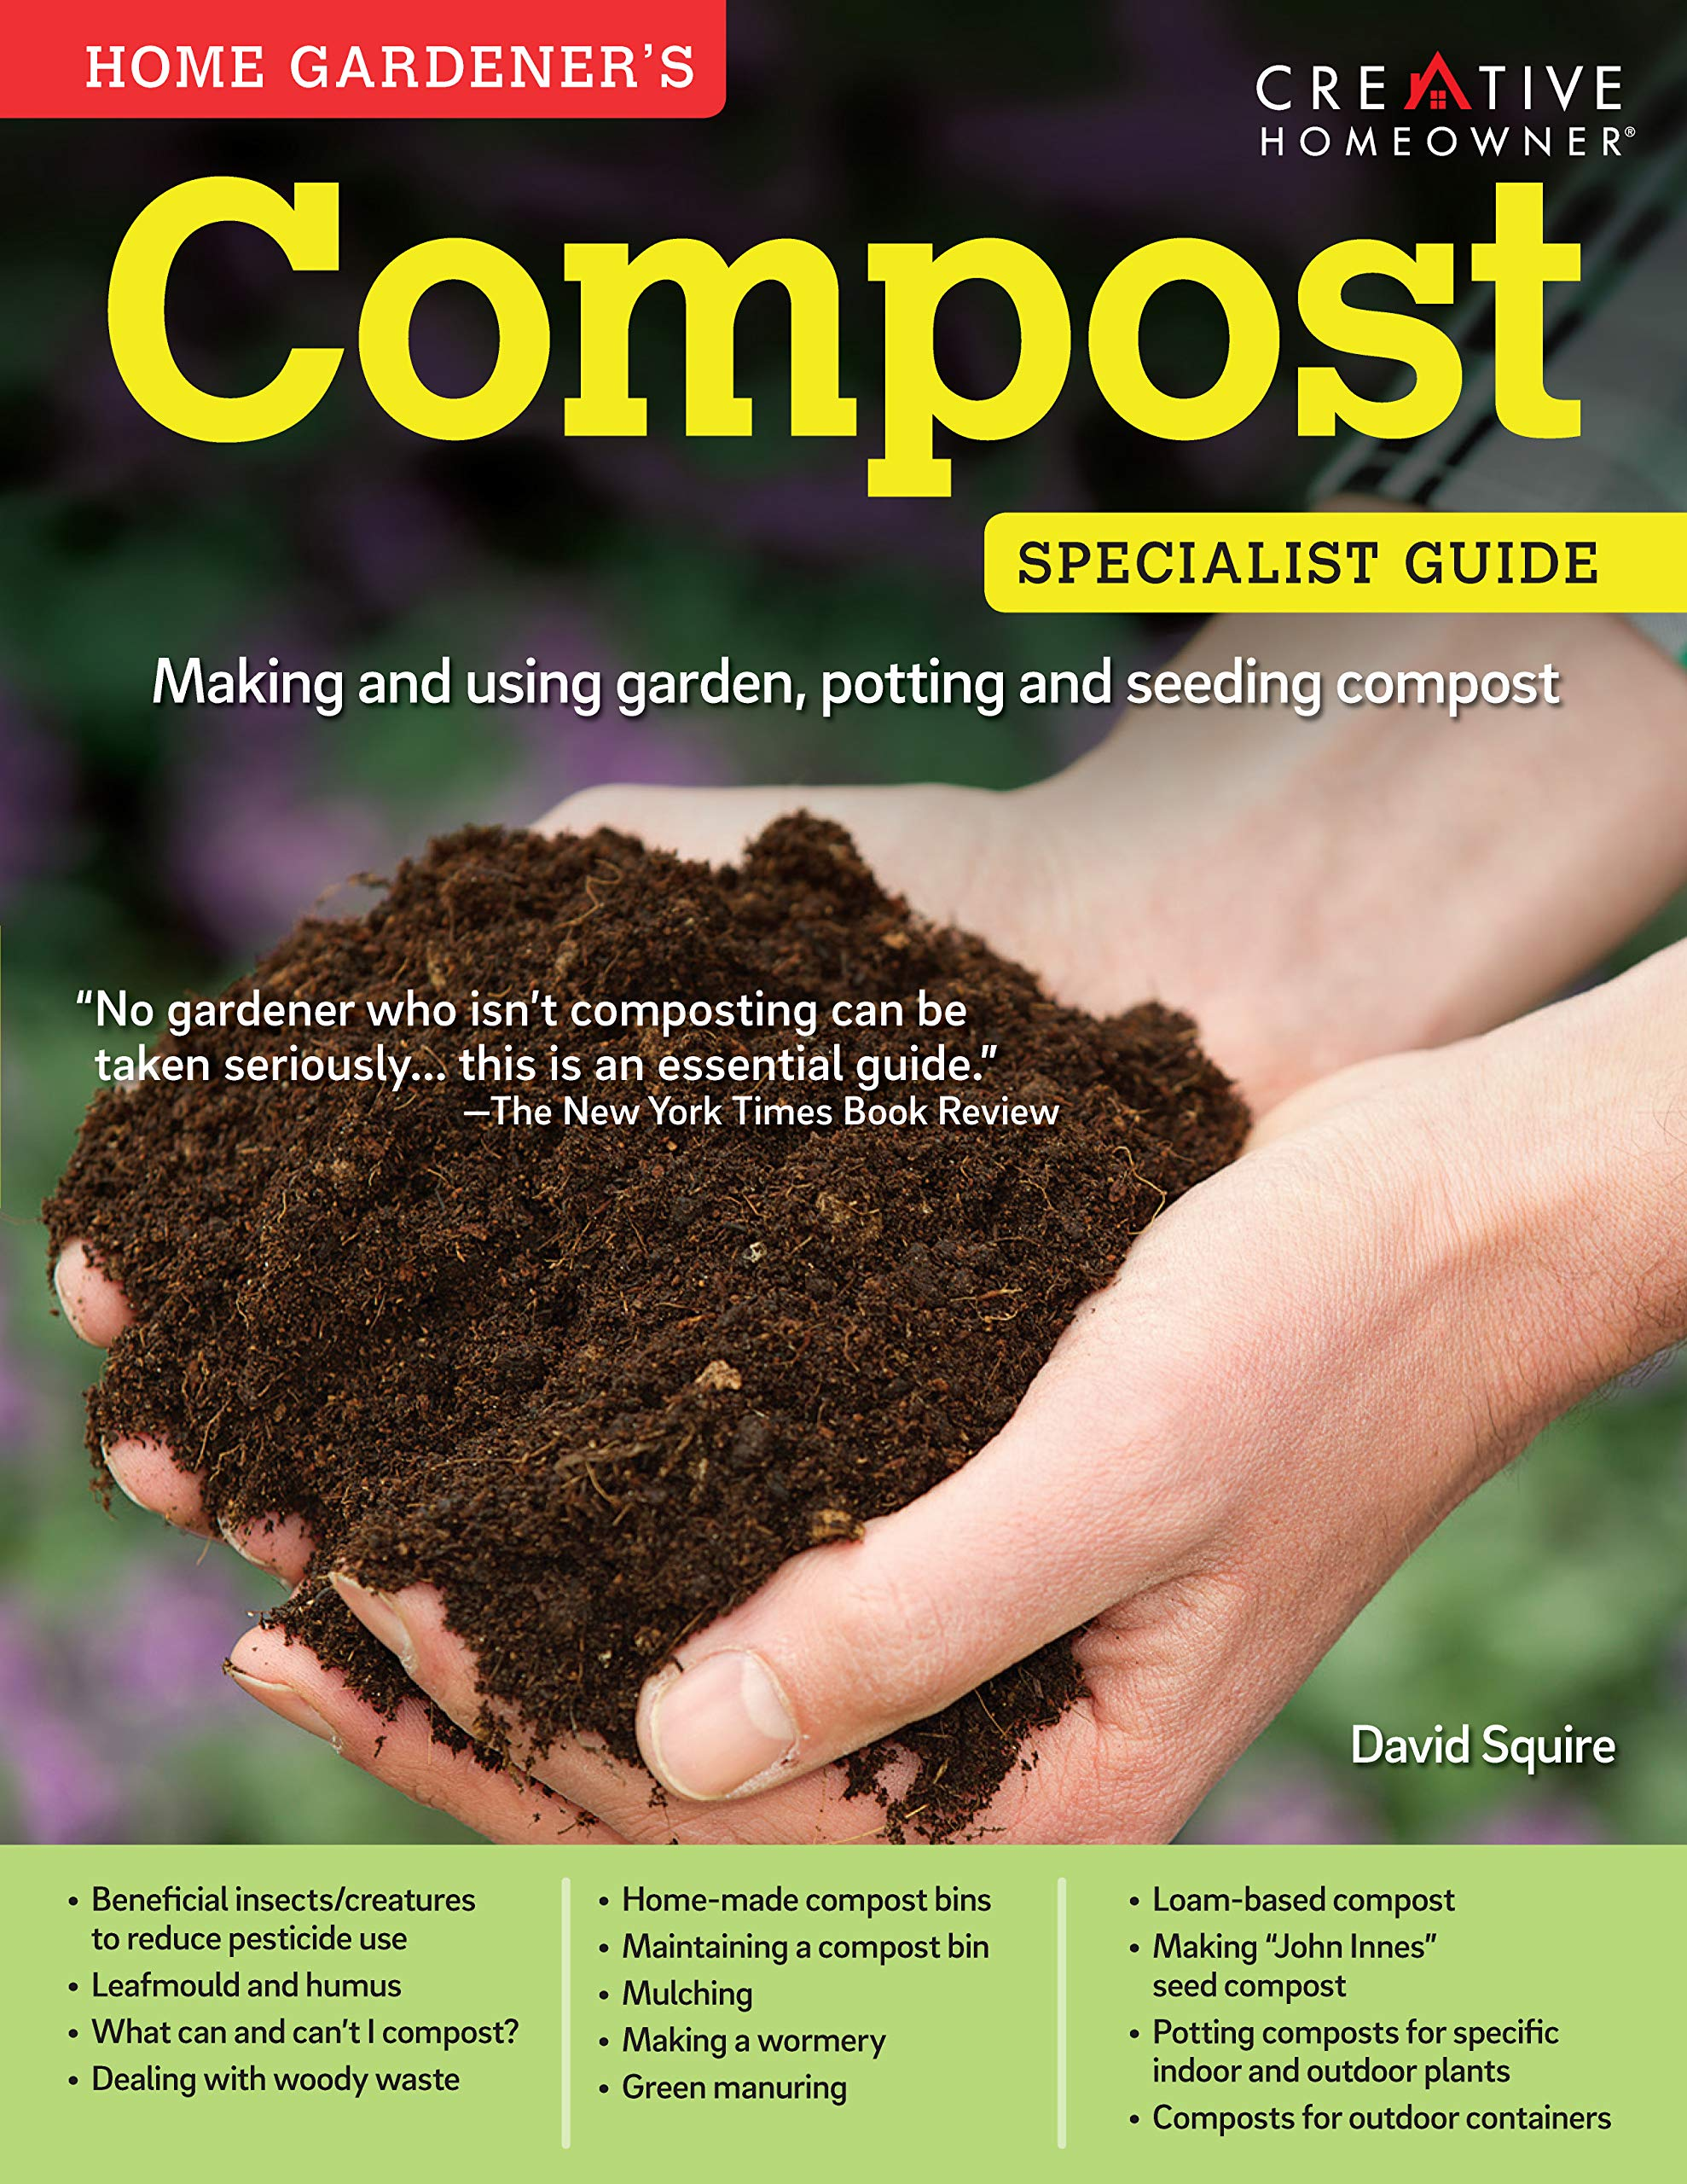 Home Gardeners Compost: Making and Using Garden, Potting ...